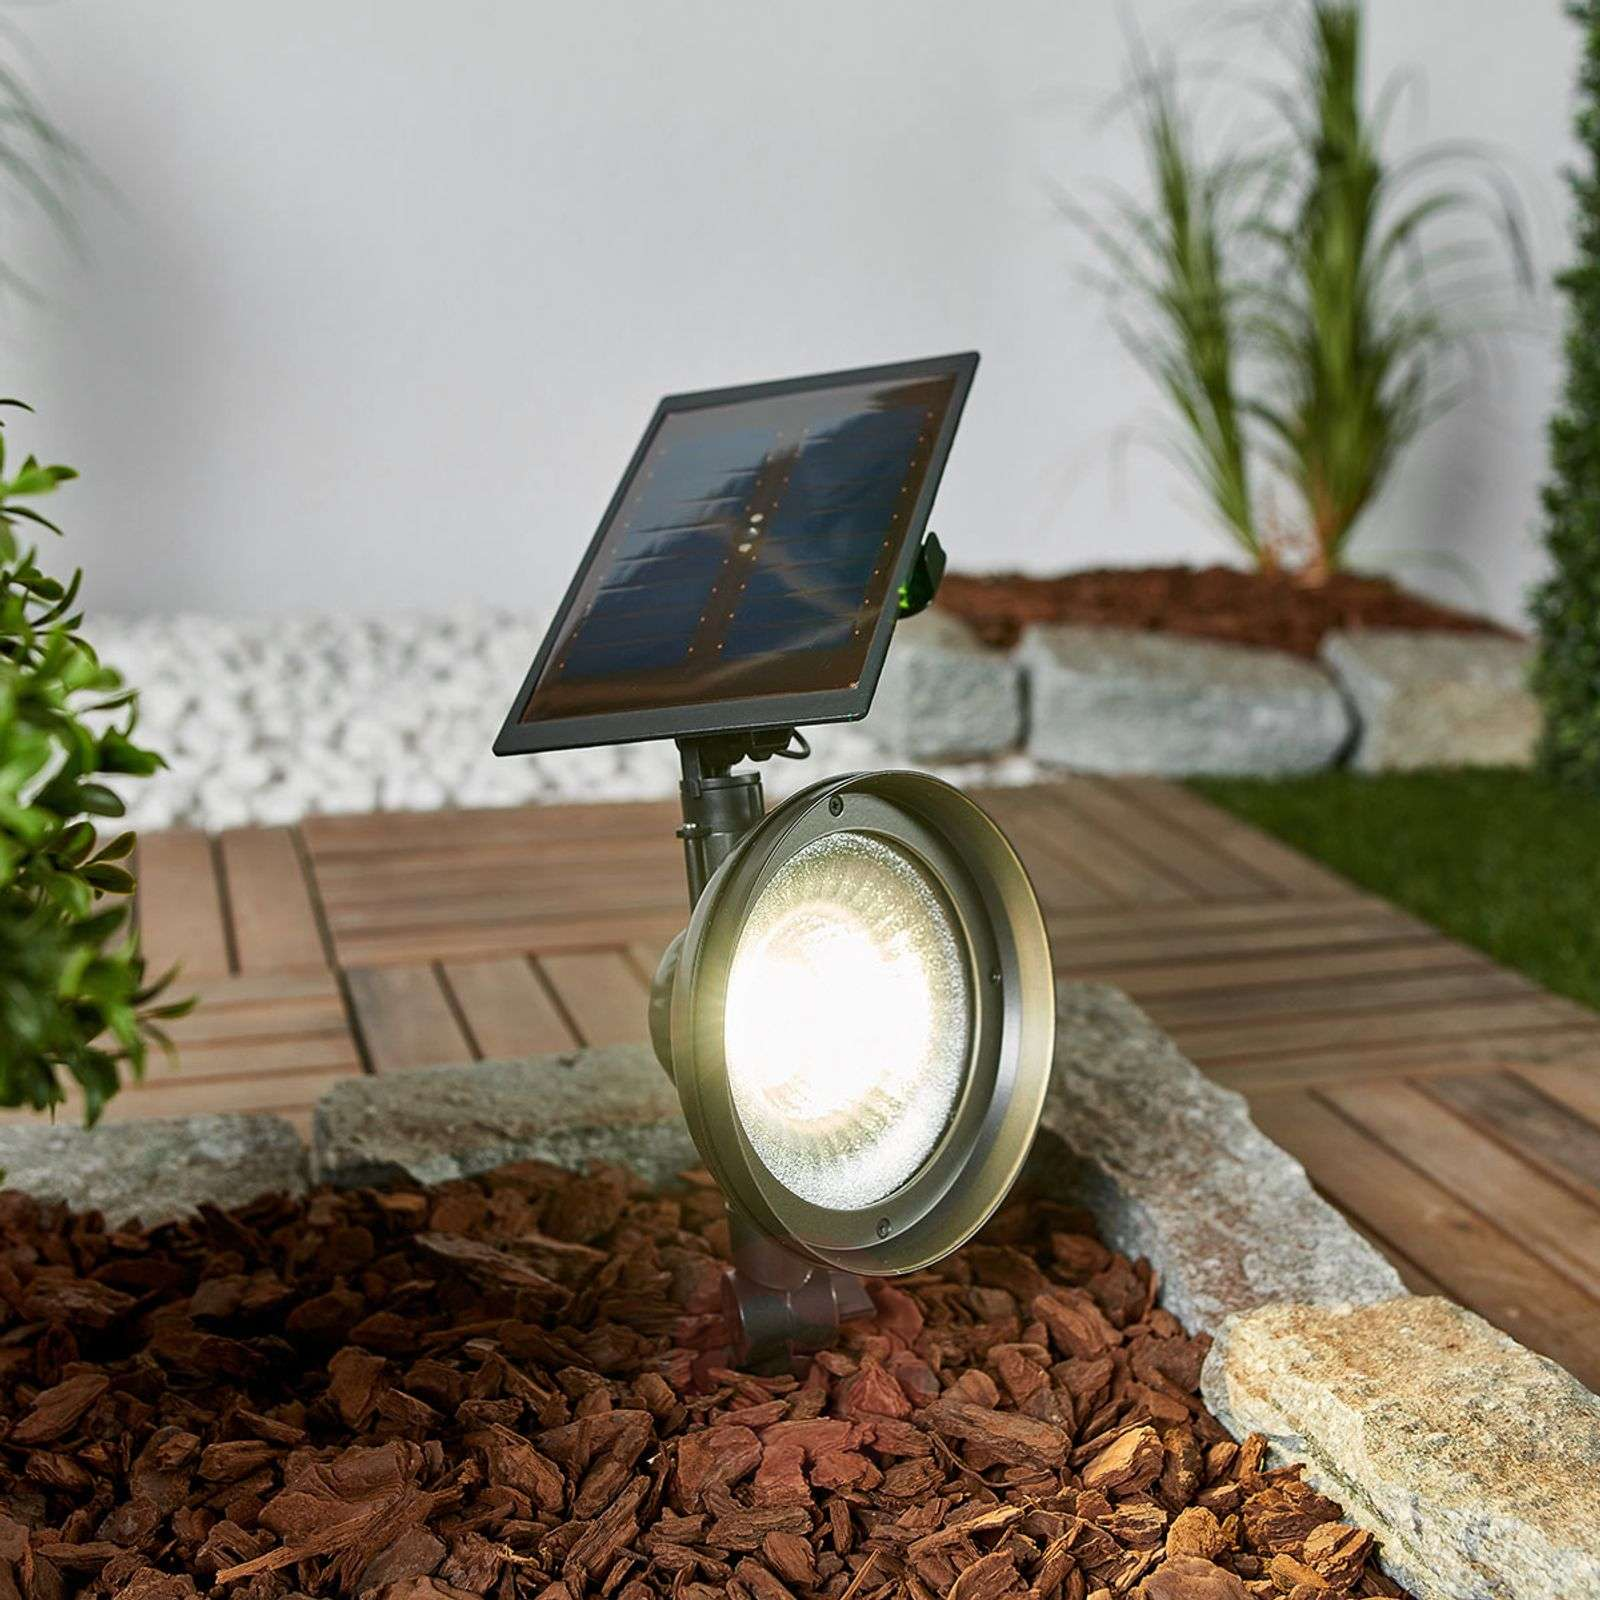 LED ground spike light Riley with solar panel-2610034-01